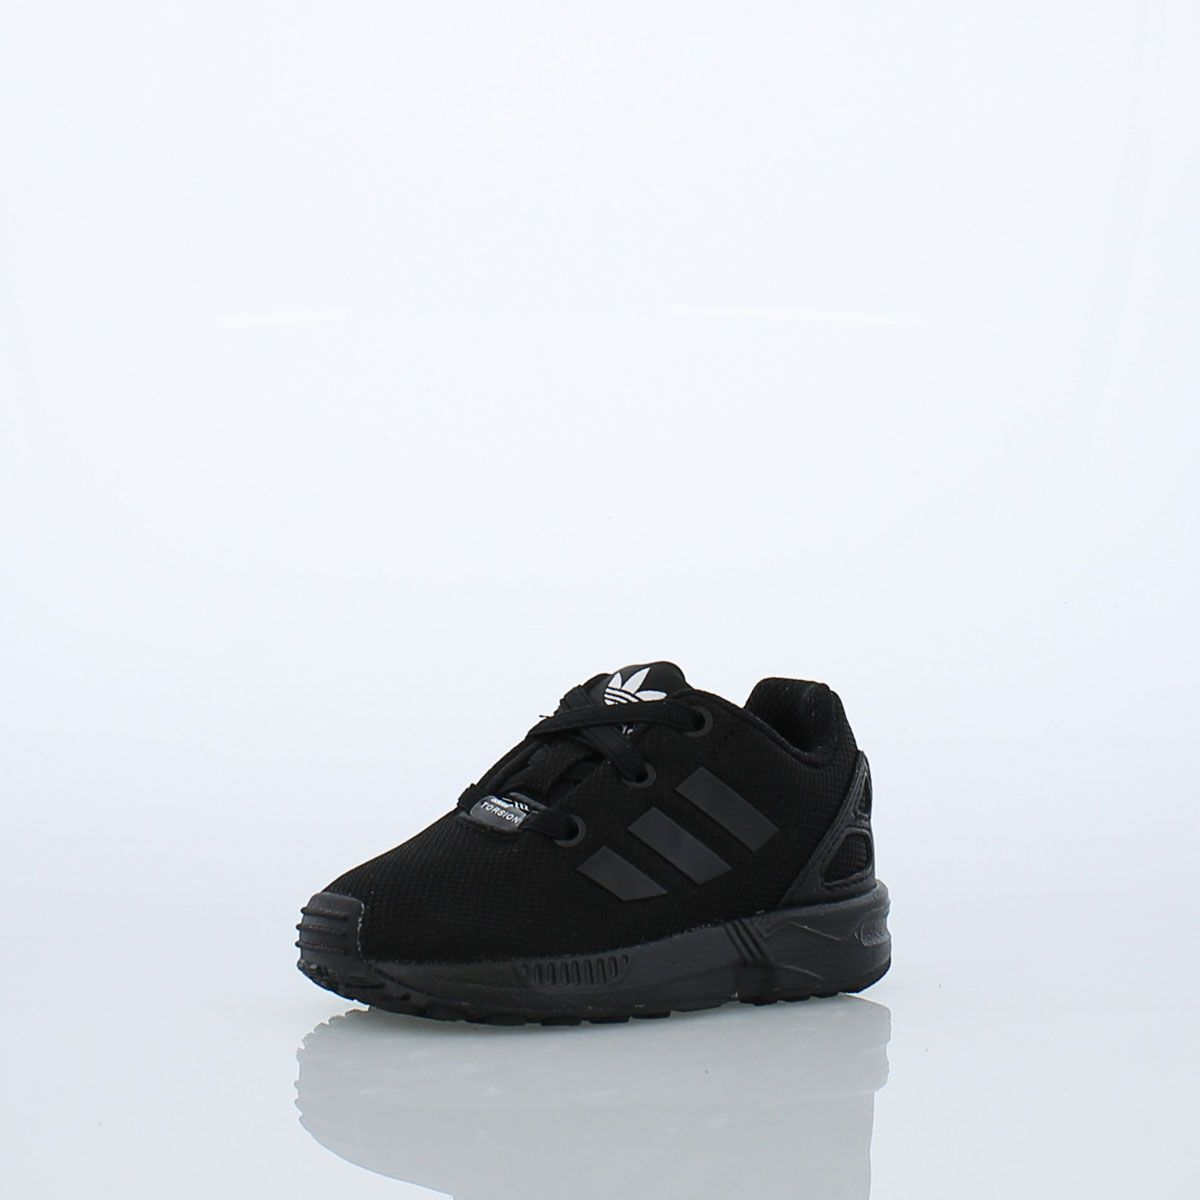 adidas ZX Flux (InfantToddler) | Adidas baby, Baby shoes